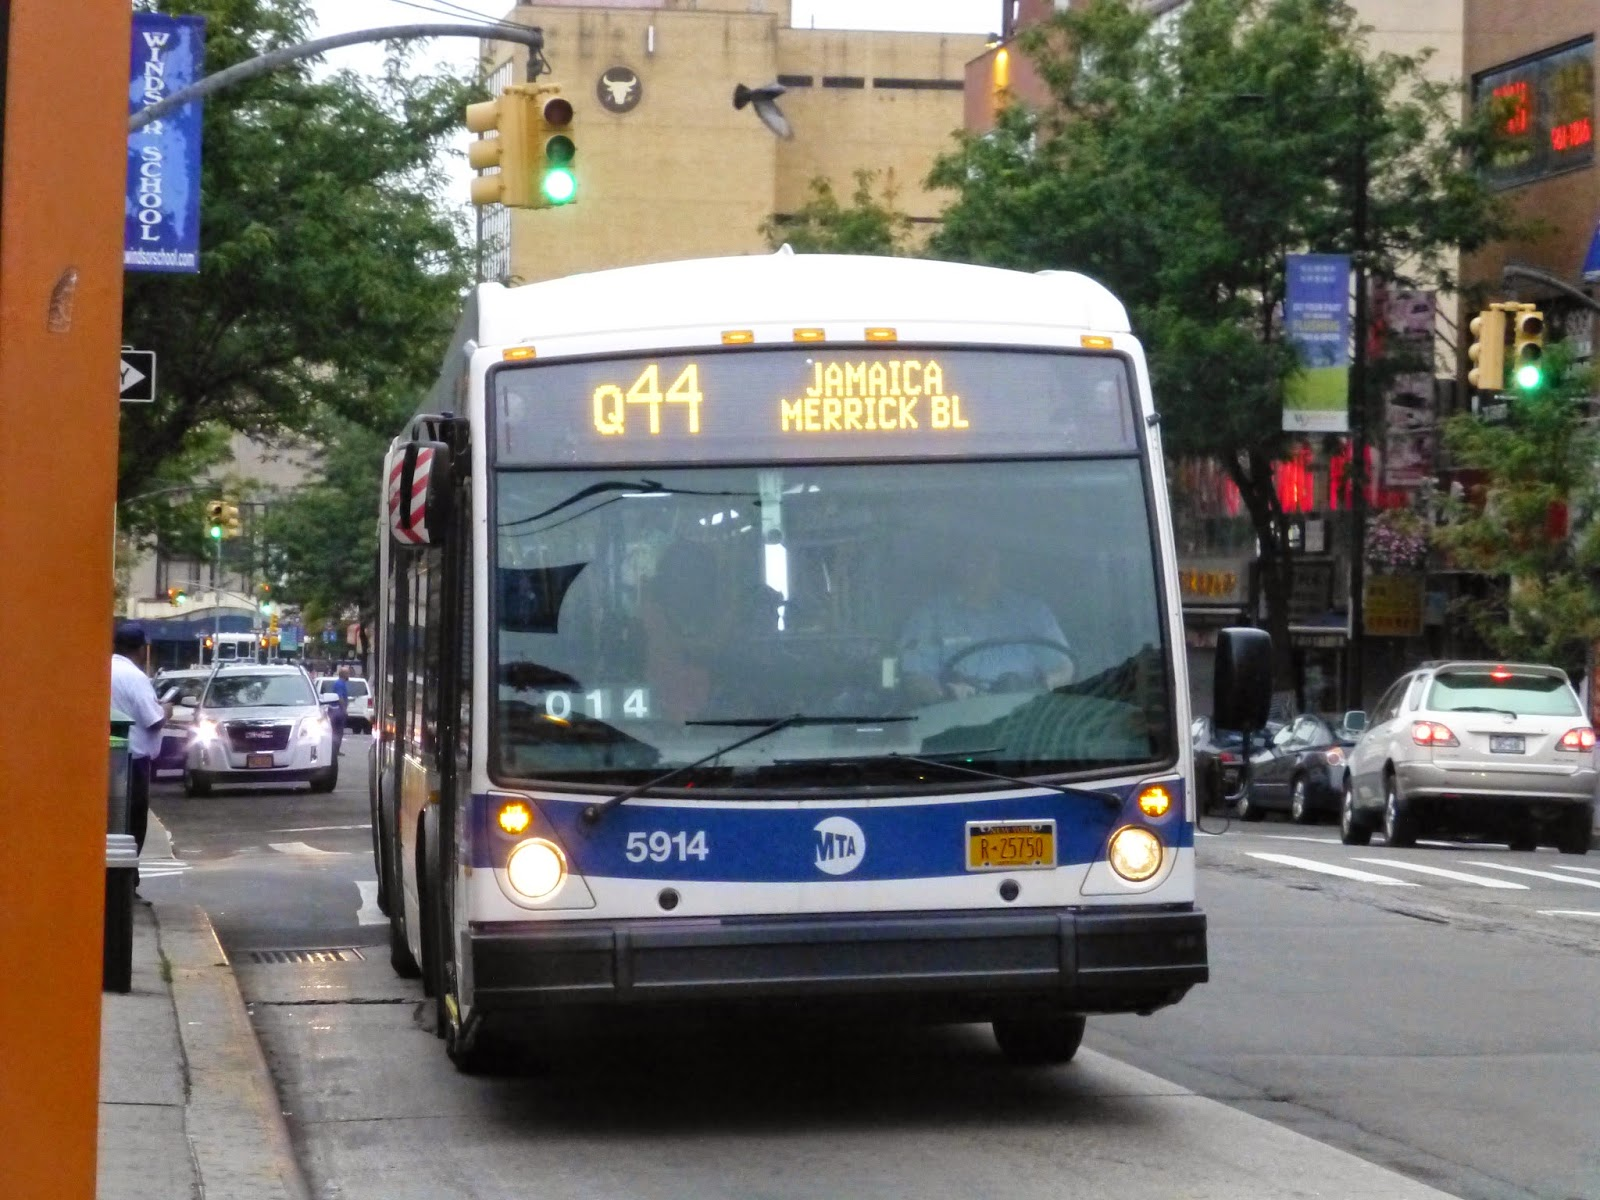 Miles On The Mbta Service Change Nyc Part 6 The Q44